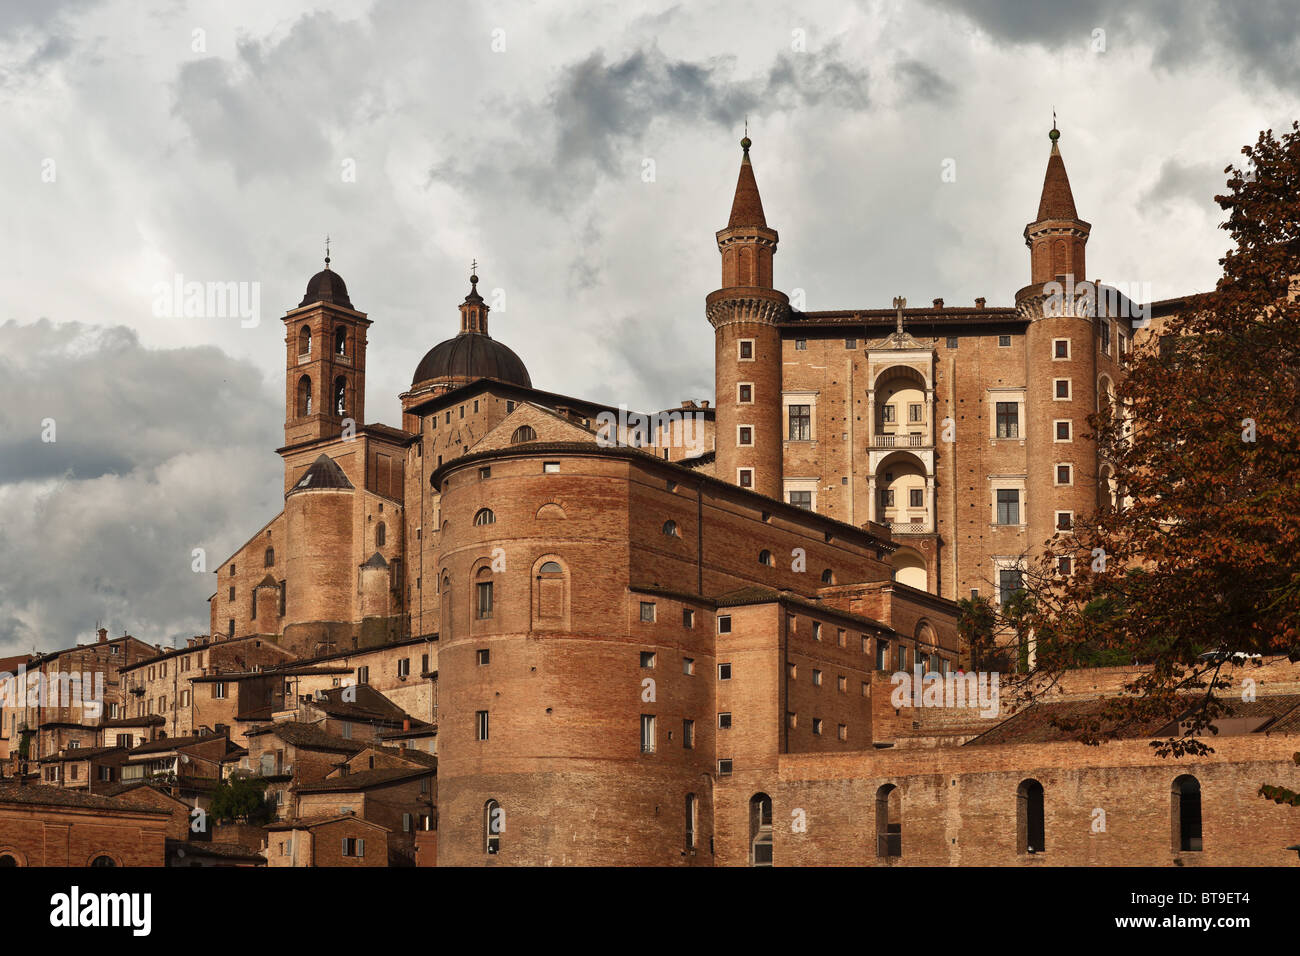 The Ducal Palace of Urbino, Marche, Italy Stock Photo